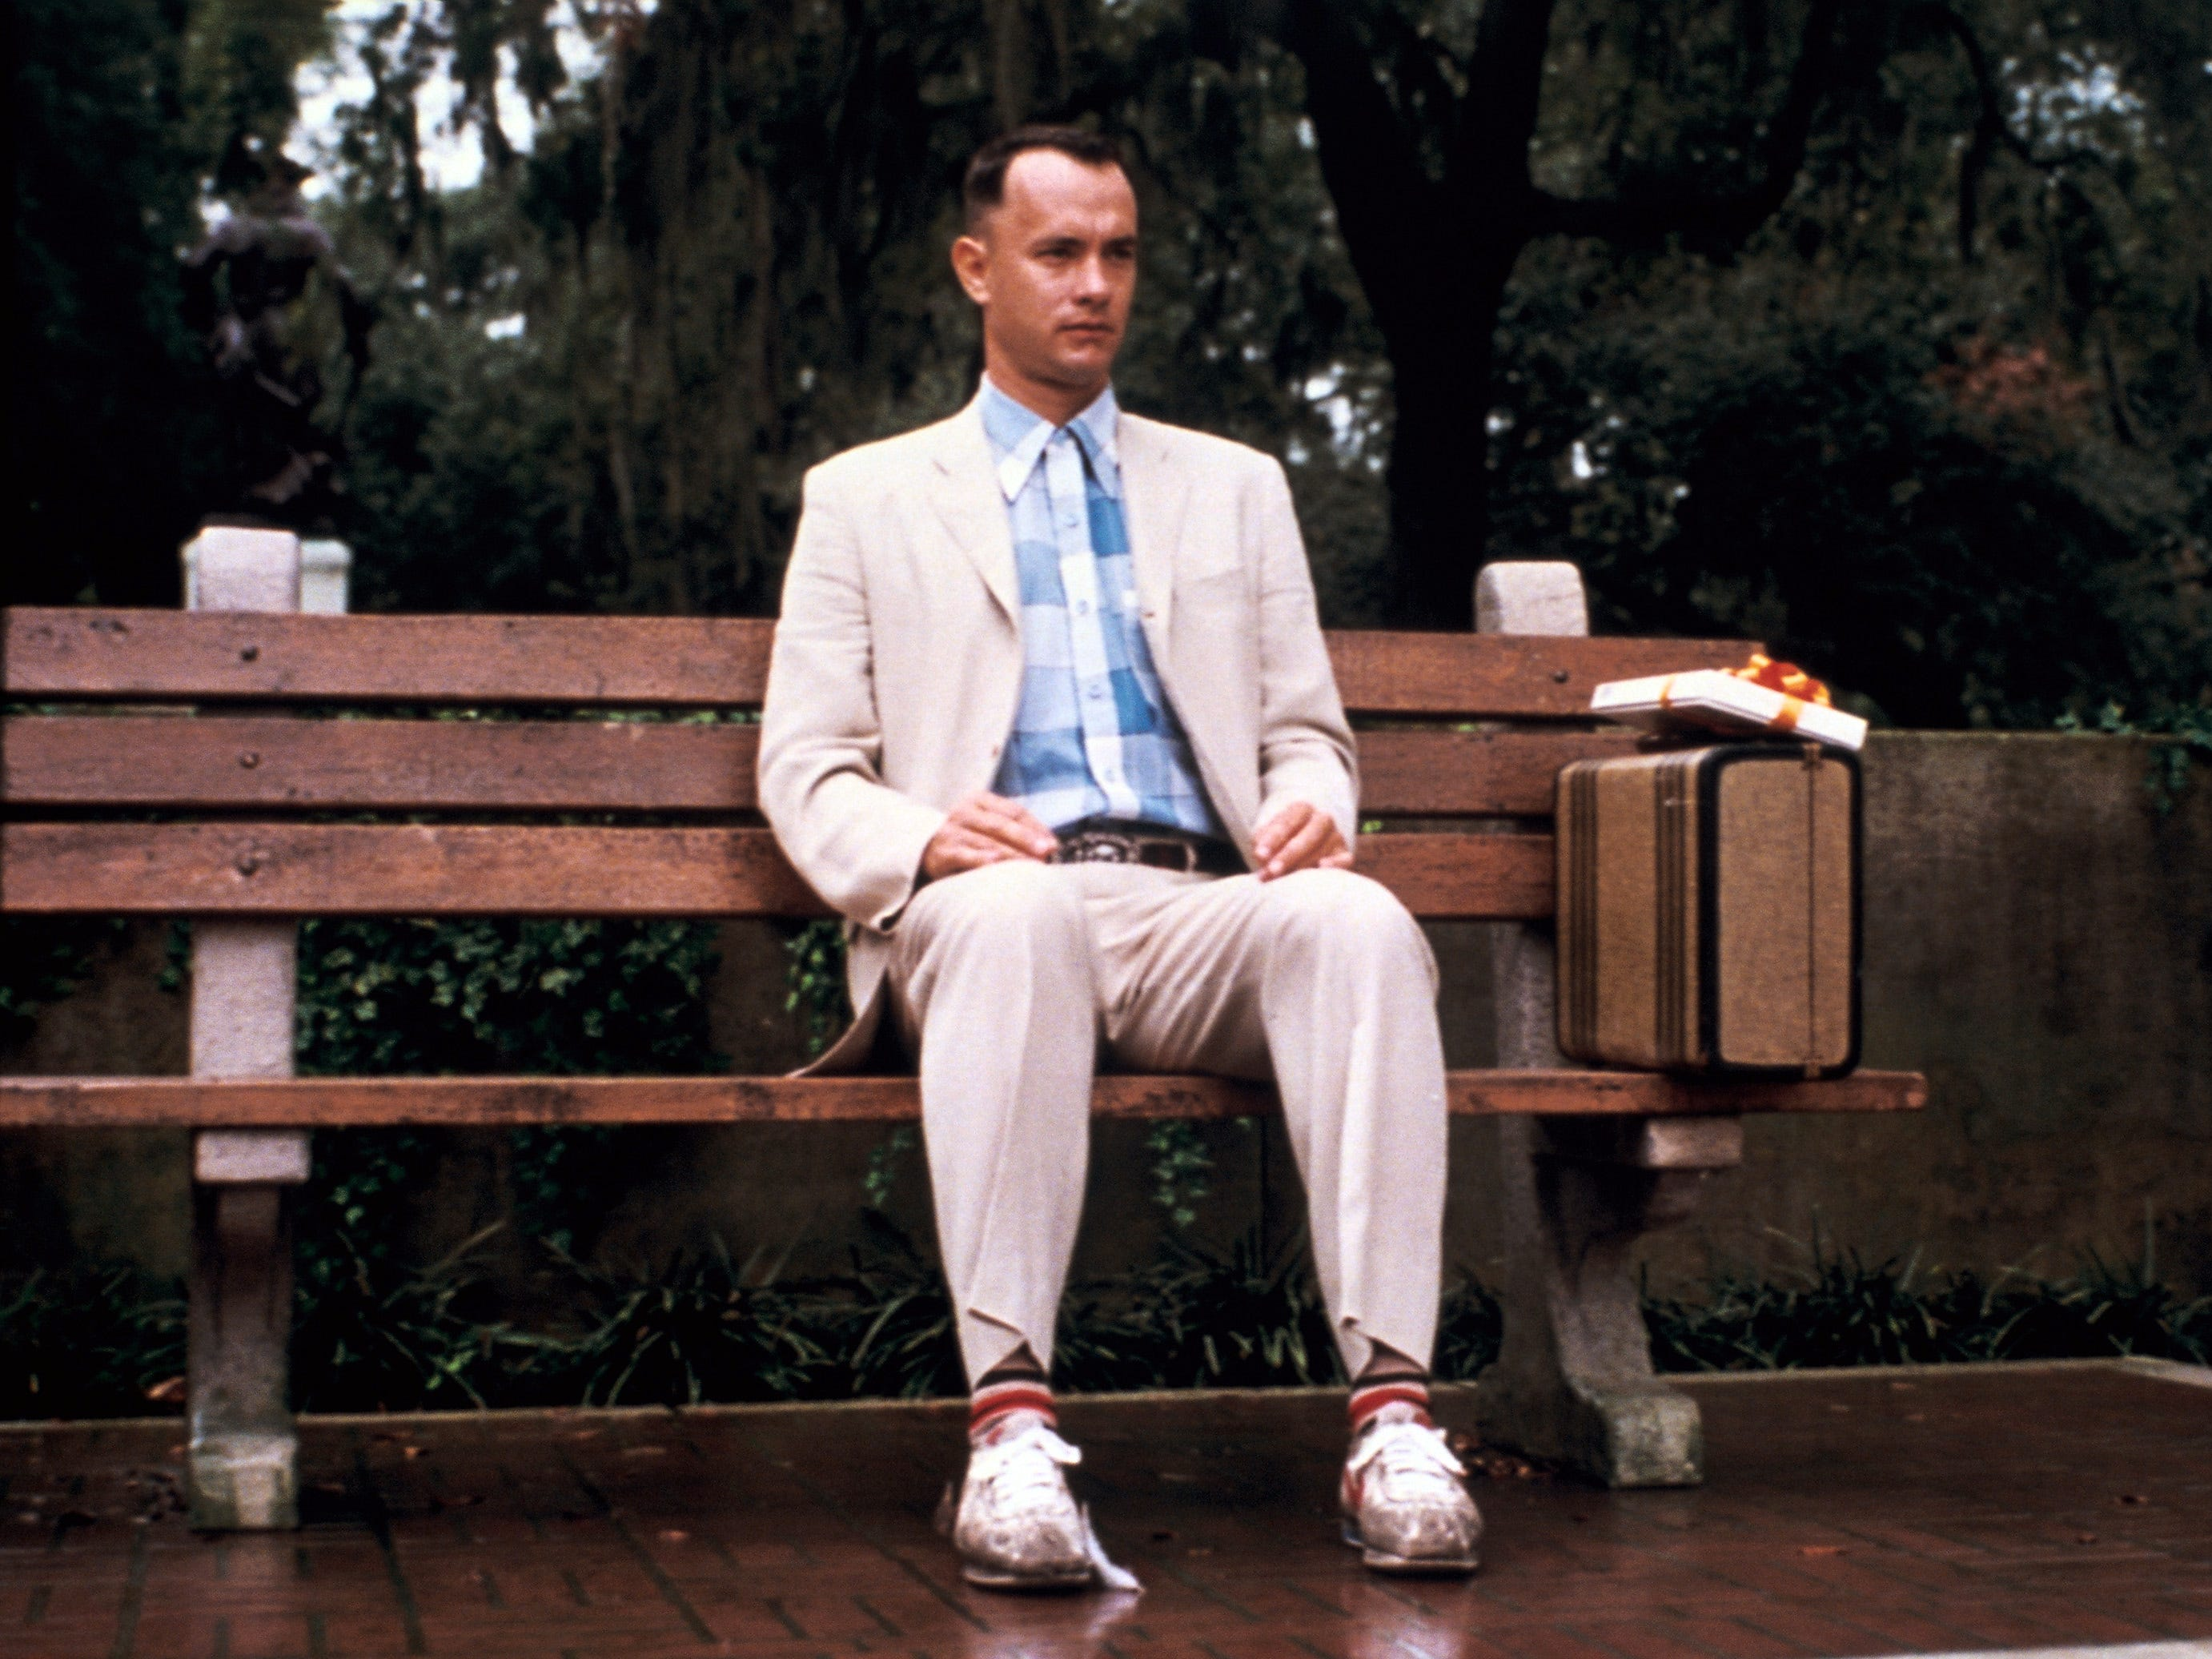 """Tom Hanks in a scene from the motion picture """"Forrest Gump."""" CREDIT: Phillip Caruso, Paramount Pictures [Via MerlinFTP Drop]"""